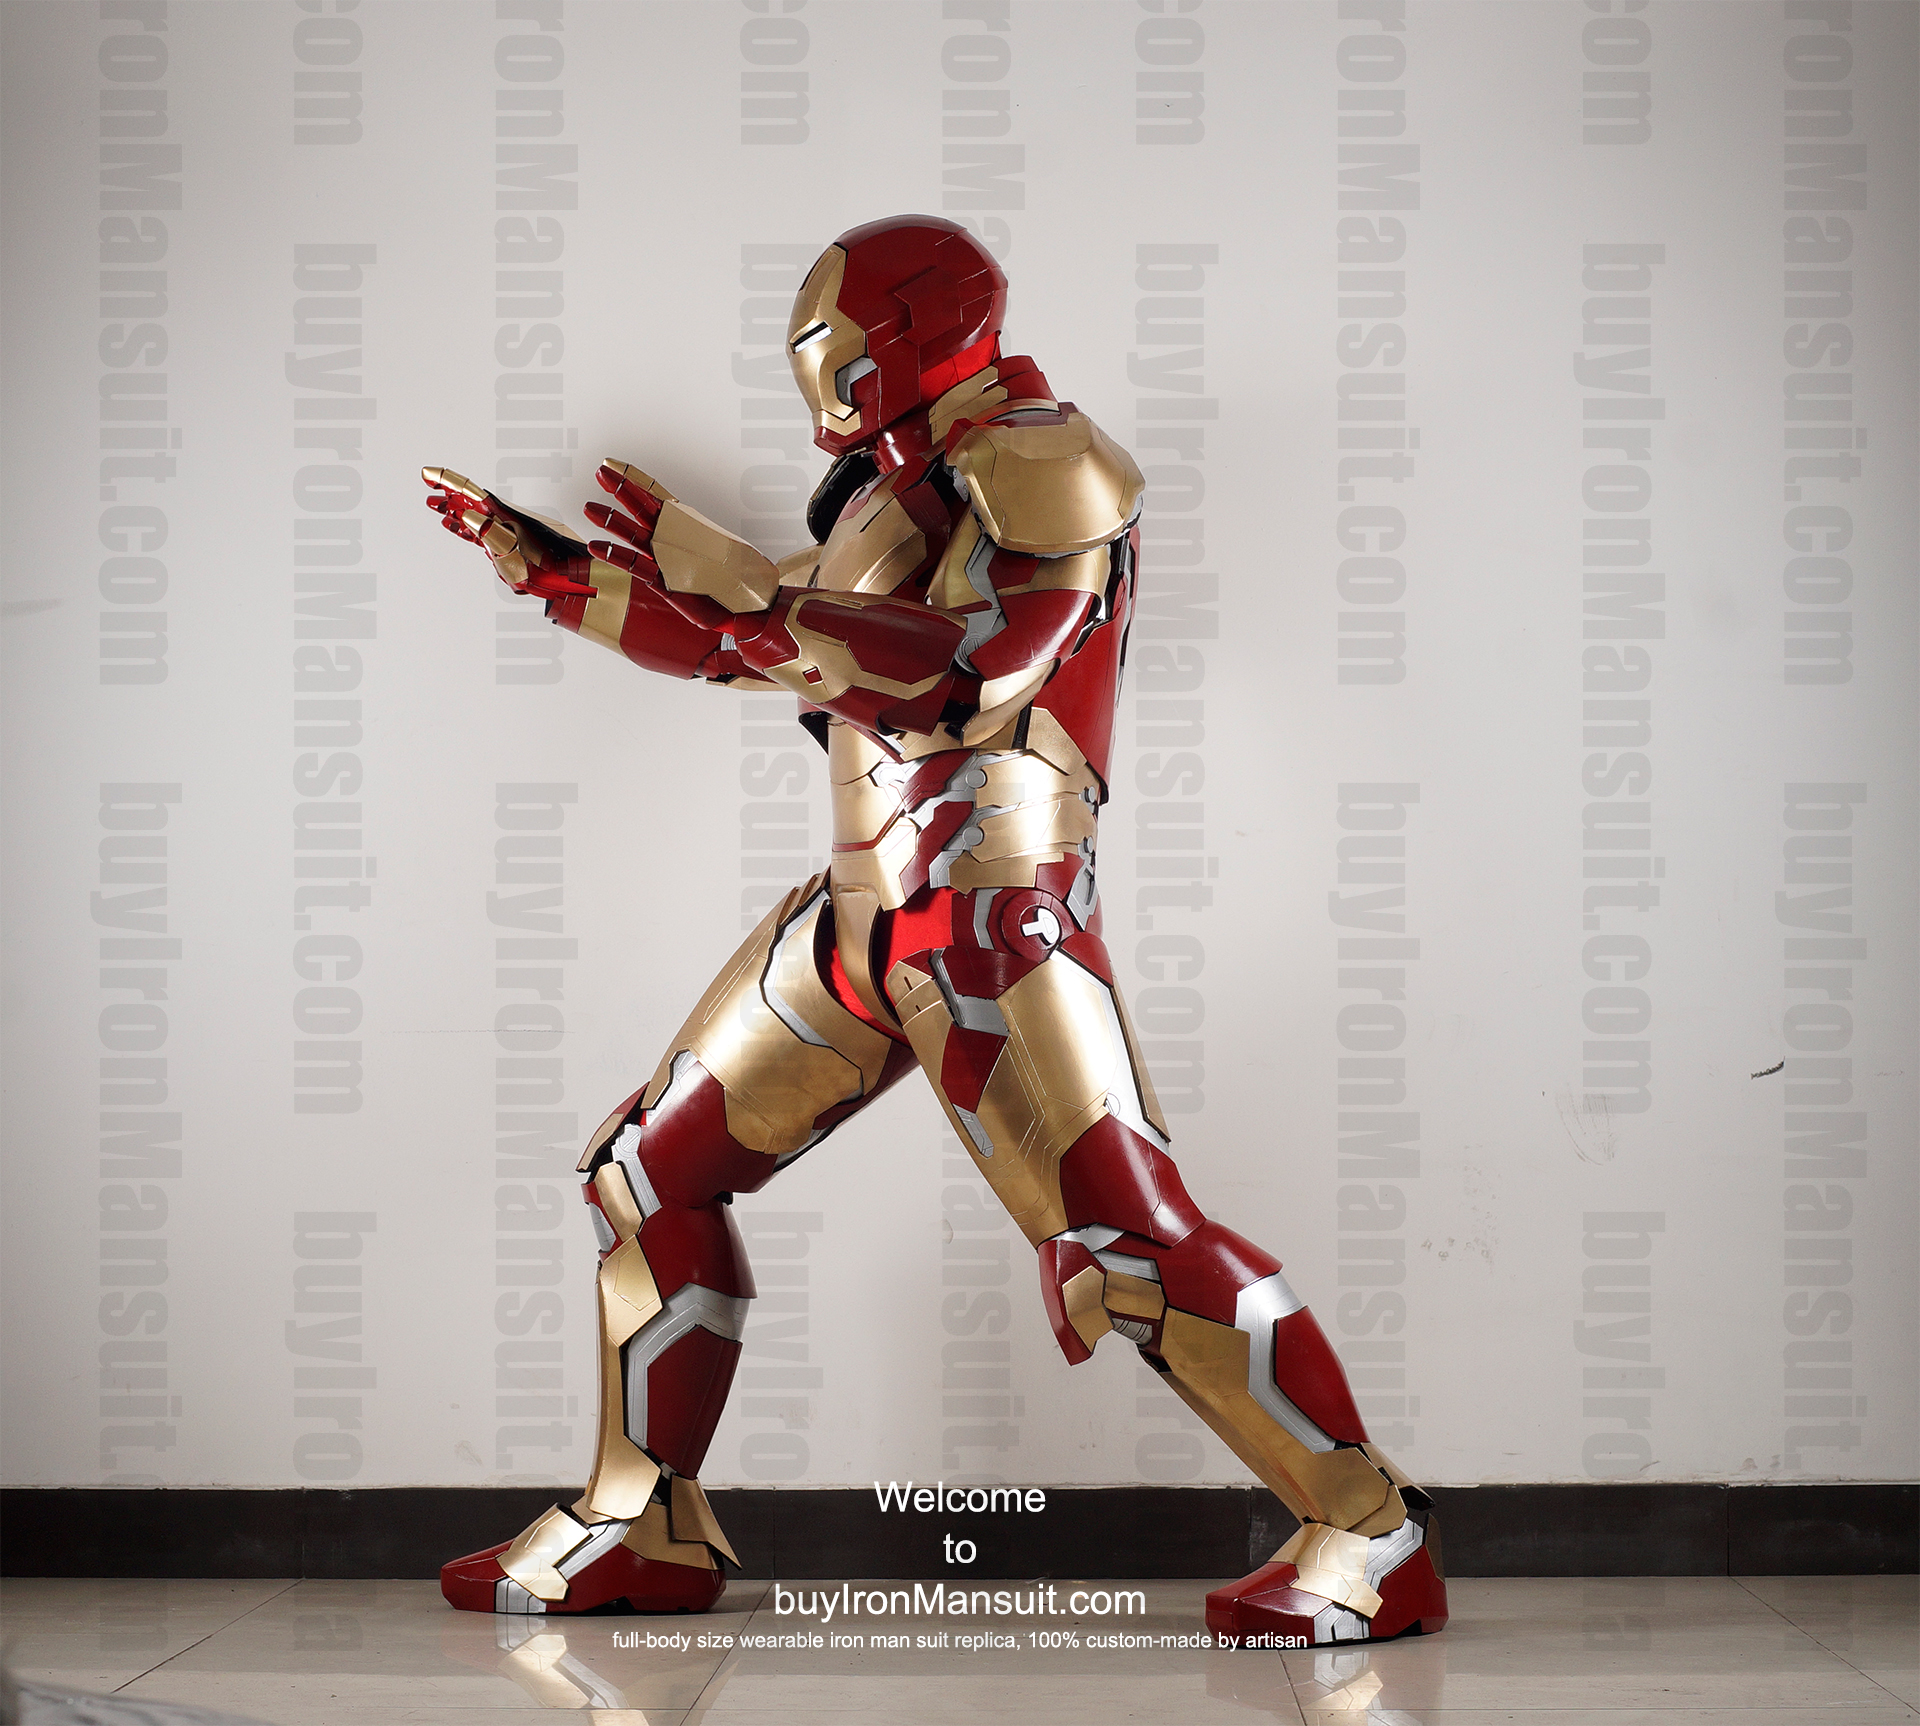 Buy Iron Man Suit Replica Buy Iron Man Suit Mark 42